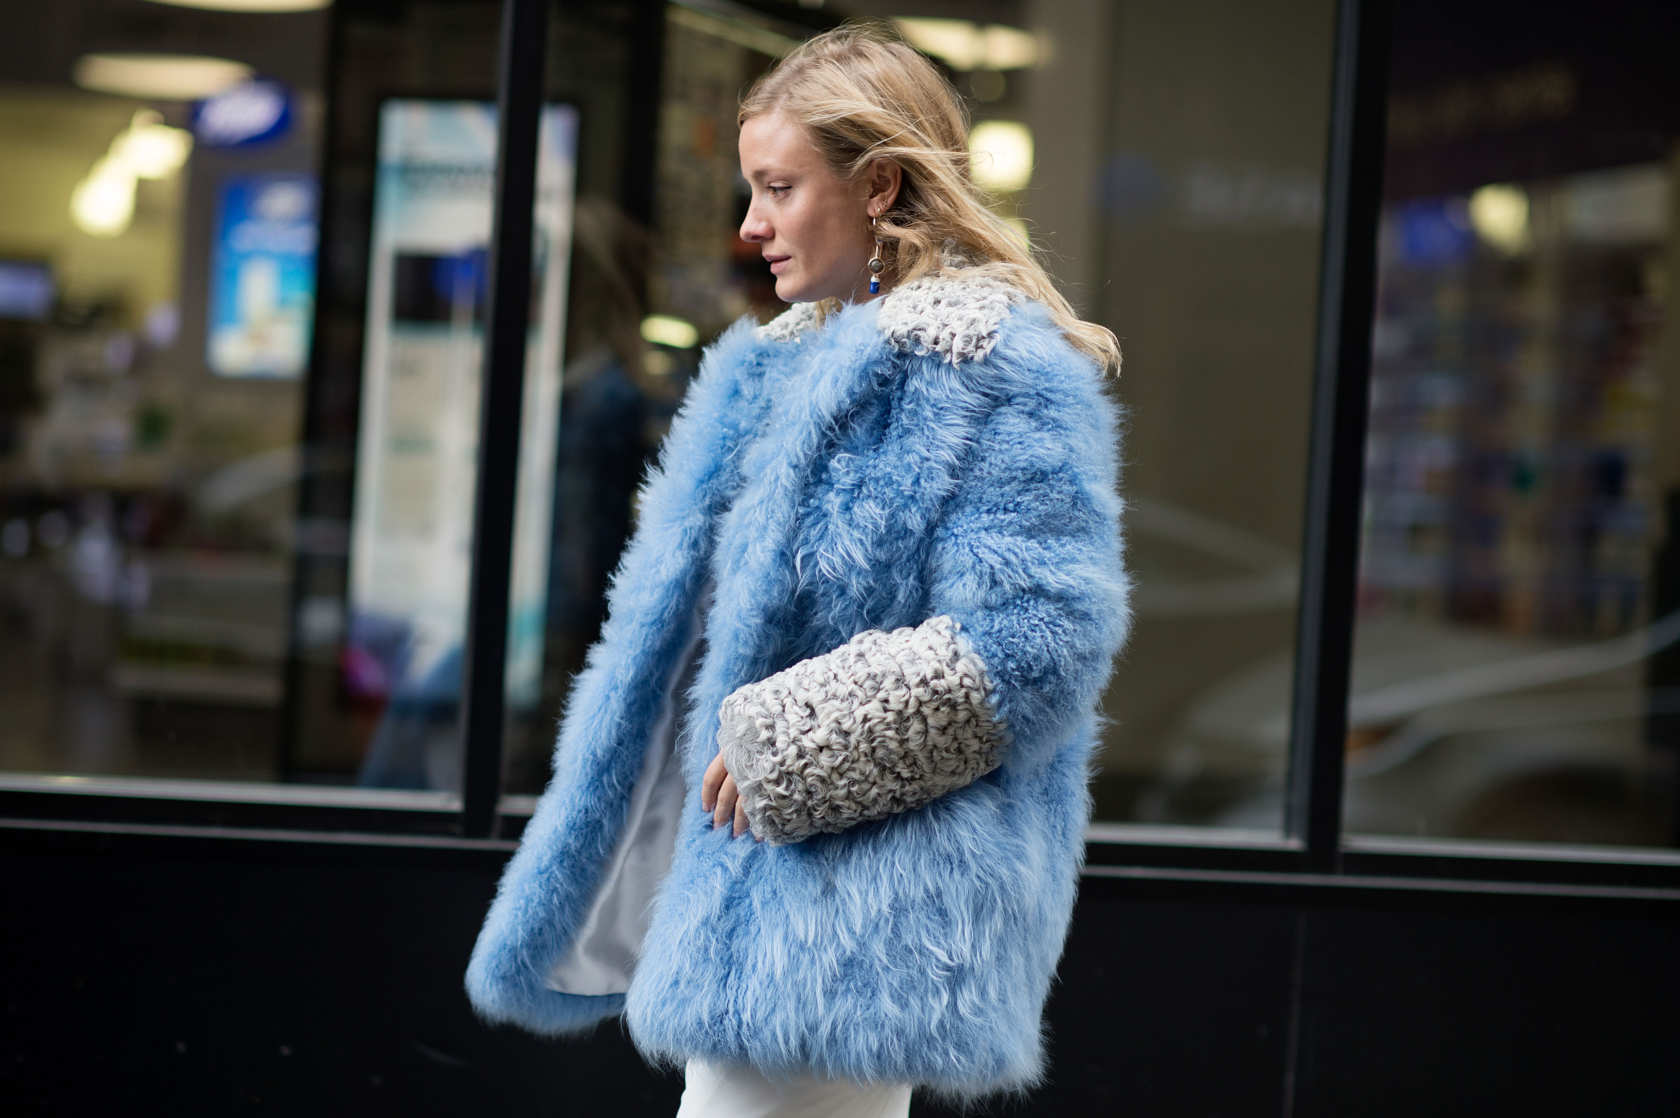 kate-foley, colored fur, statement coat, nyfw, winter, layering, coats, cold, fashion week